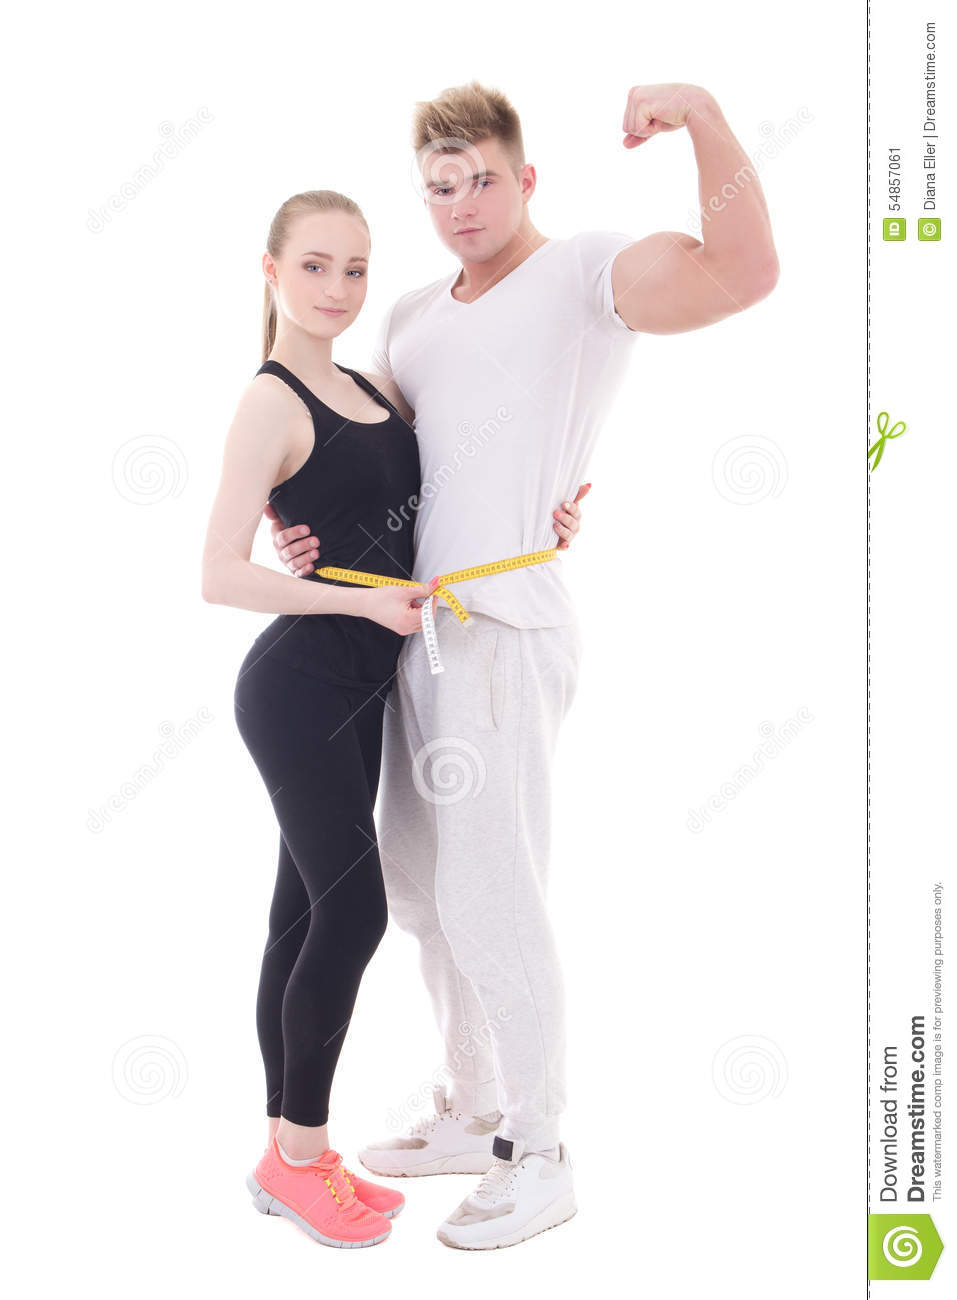 weight loss concept - young muscular man and slim woman with measure tape isolated on white